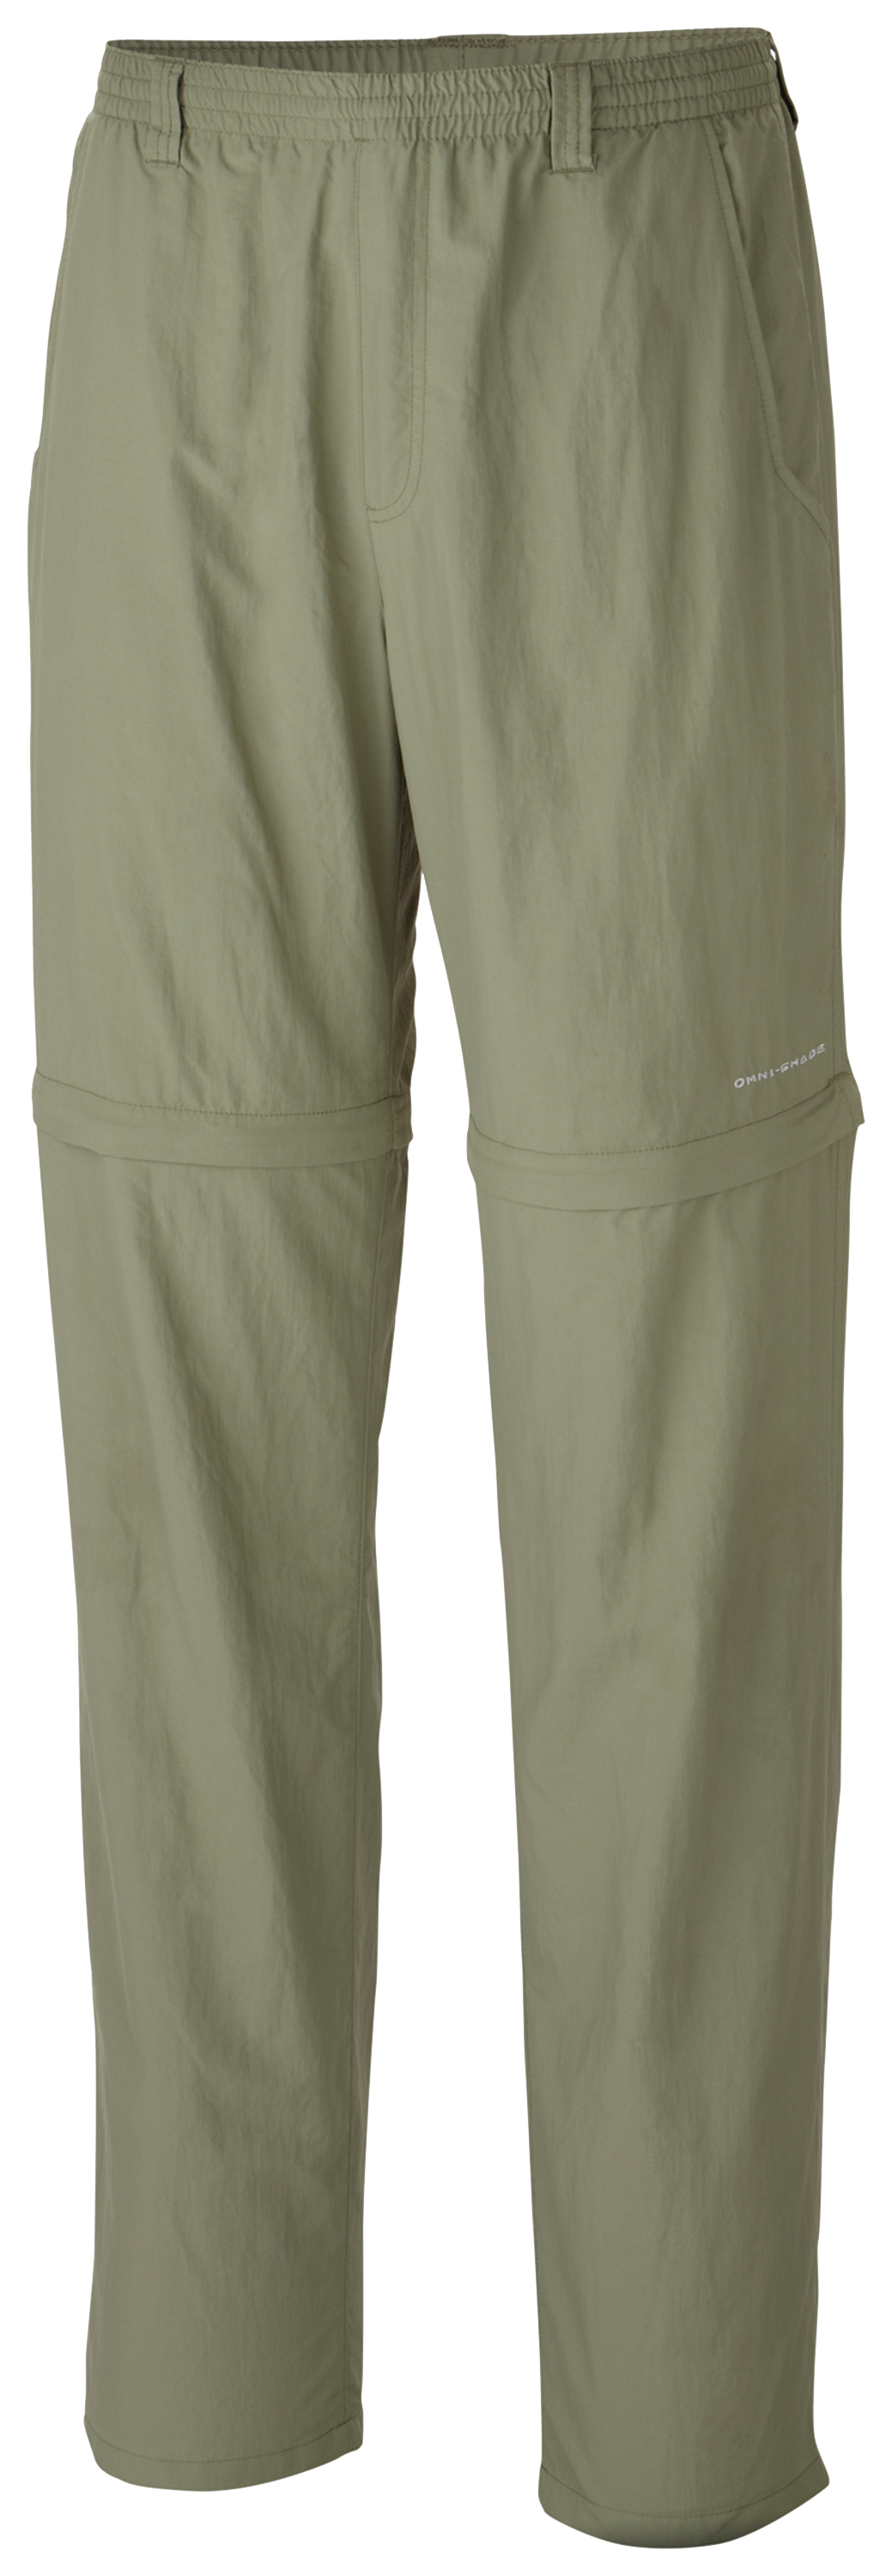 Columbia-Sportswear-Backcast-Convertable-Pants-Big-Tall-Mens-Active-Fishing-Hunting-Cypress.jog.jpg